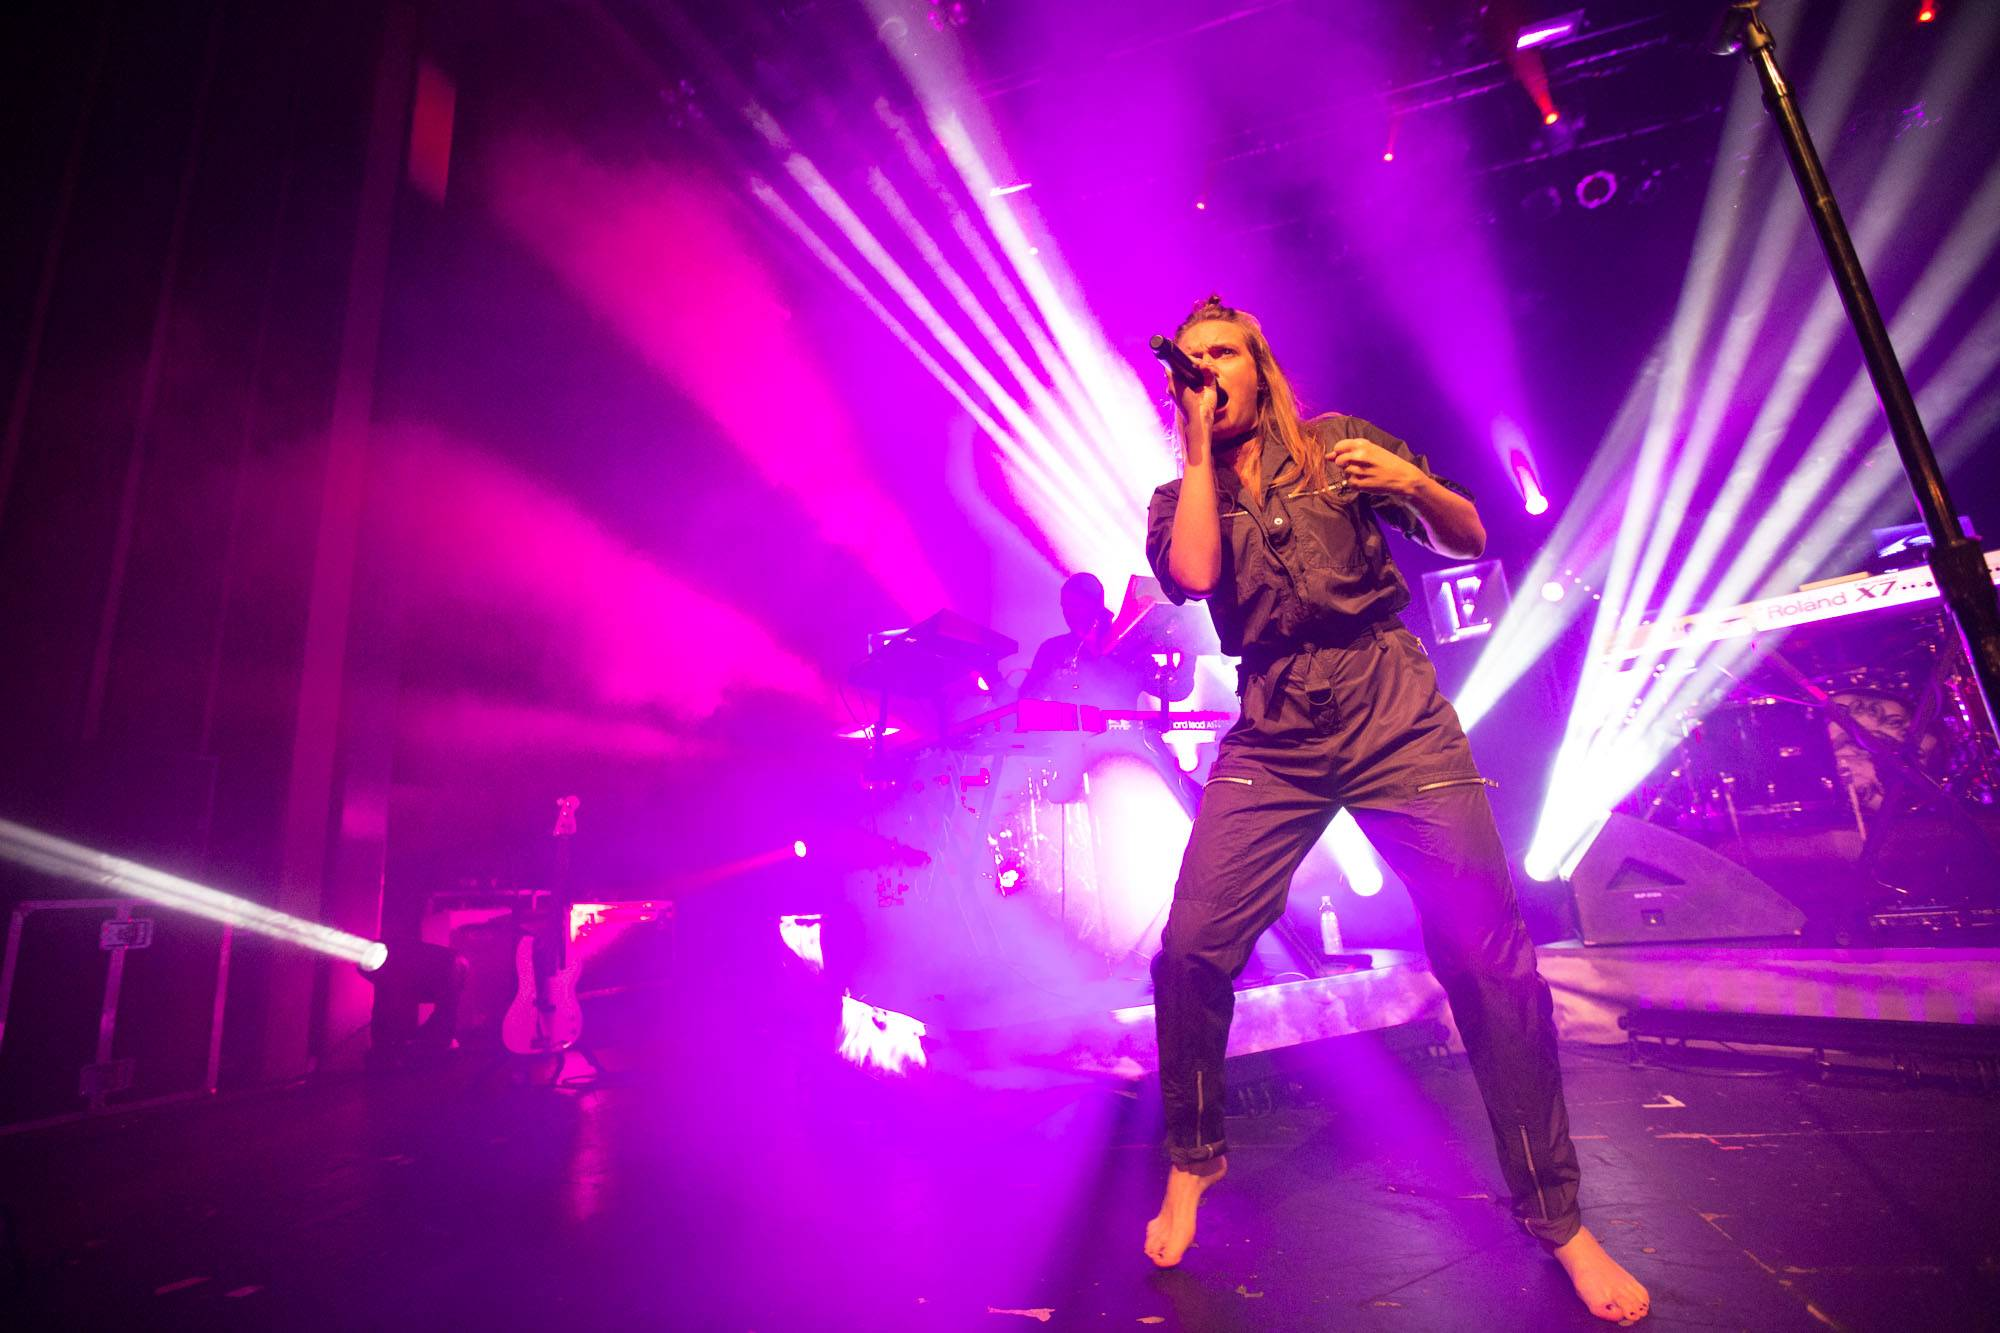 Tove Lo at the Vogue Theatre, Vancouver, Oct 6 2015. Kirk Chantraine photo.